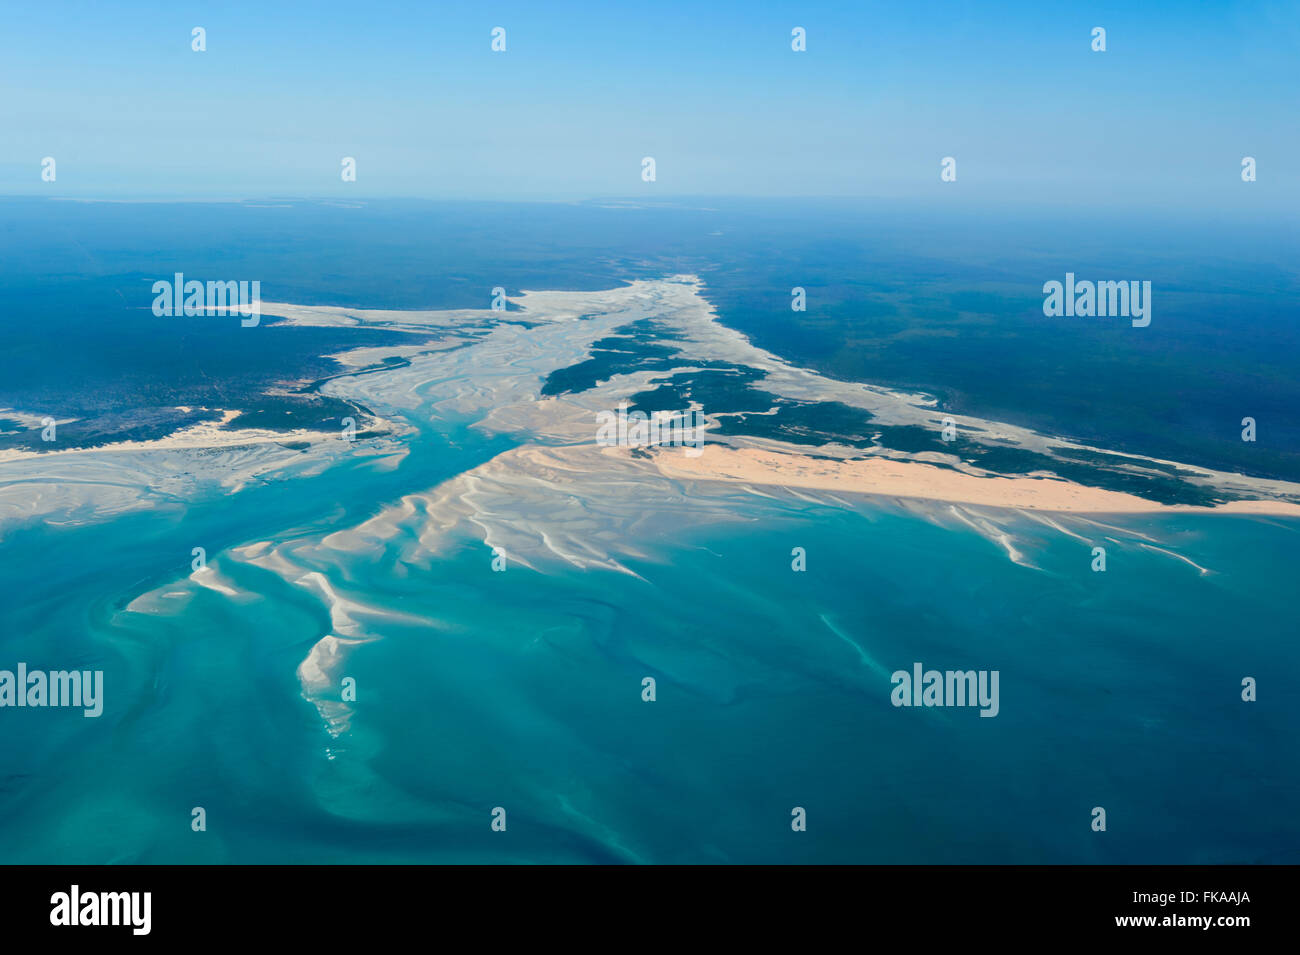 Aerial view of the Northern Coast of Western Australia - Stock Image